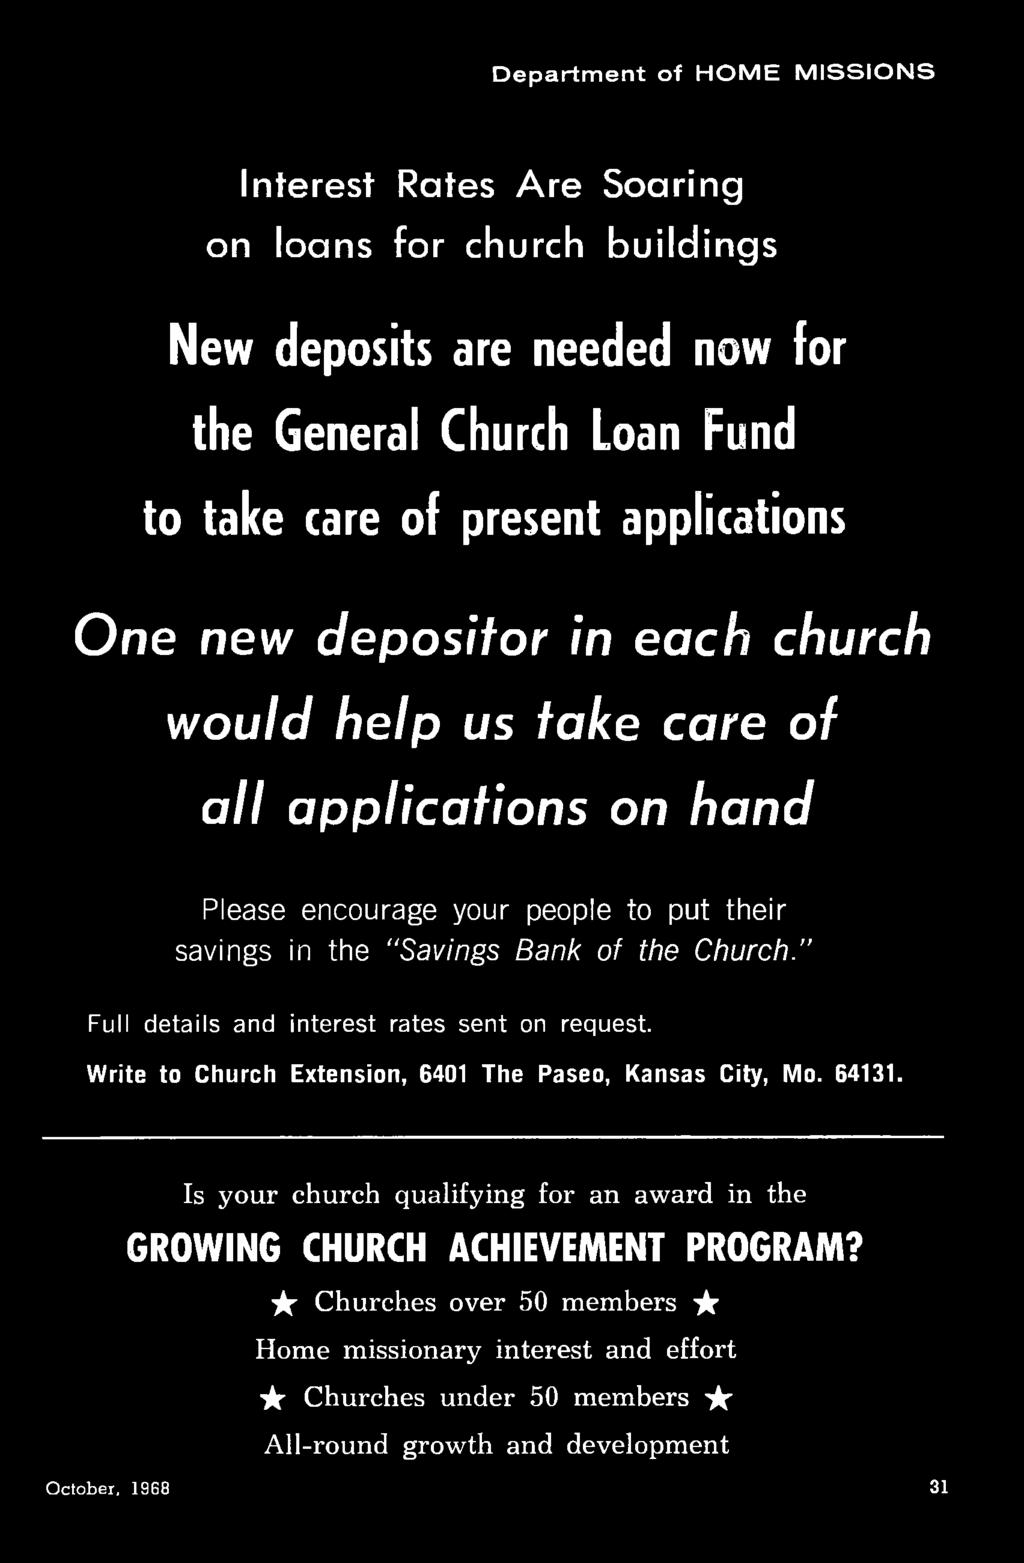 "h u rch."" Full details and interest rates sent on request. Write to Church Extension, 6401 The Paseo, Kansas City, Mo. 64131."